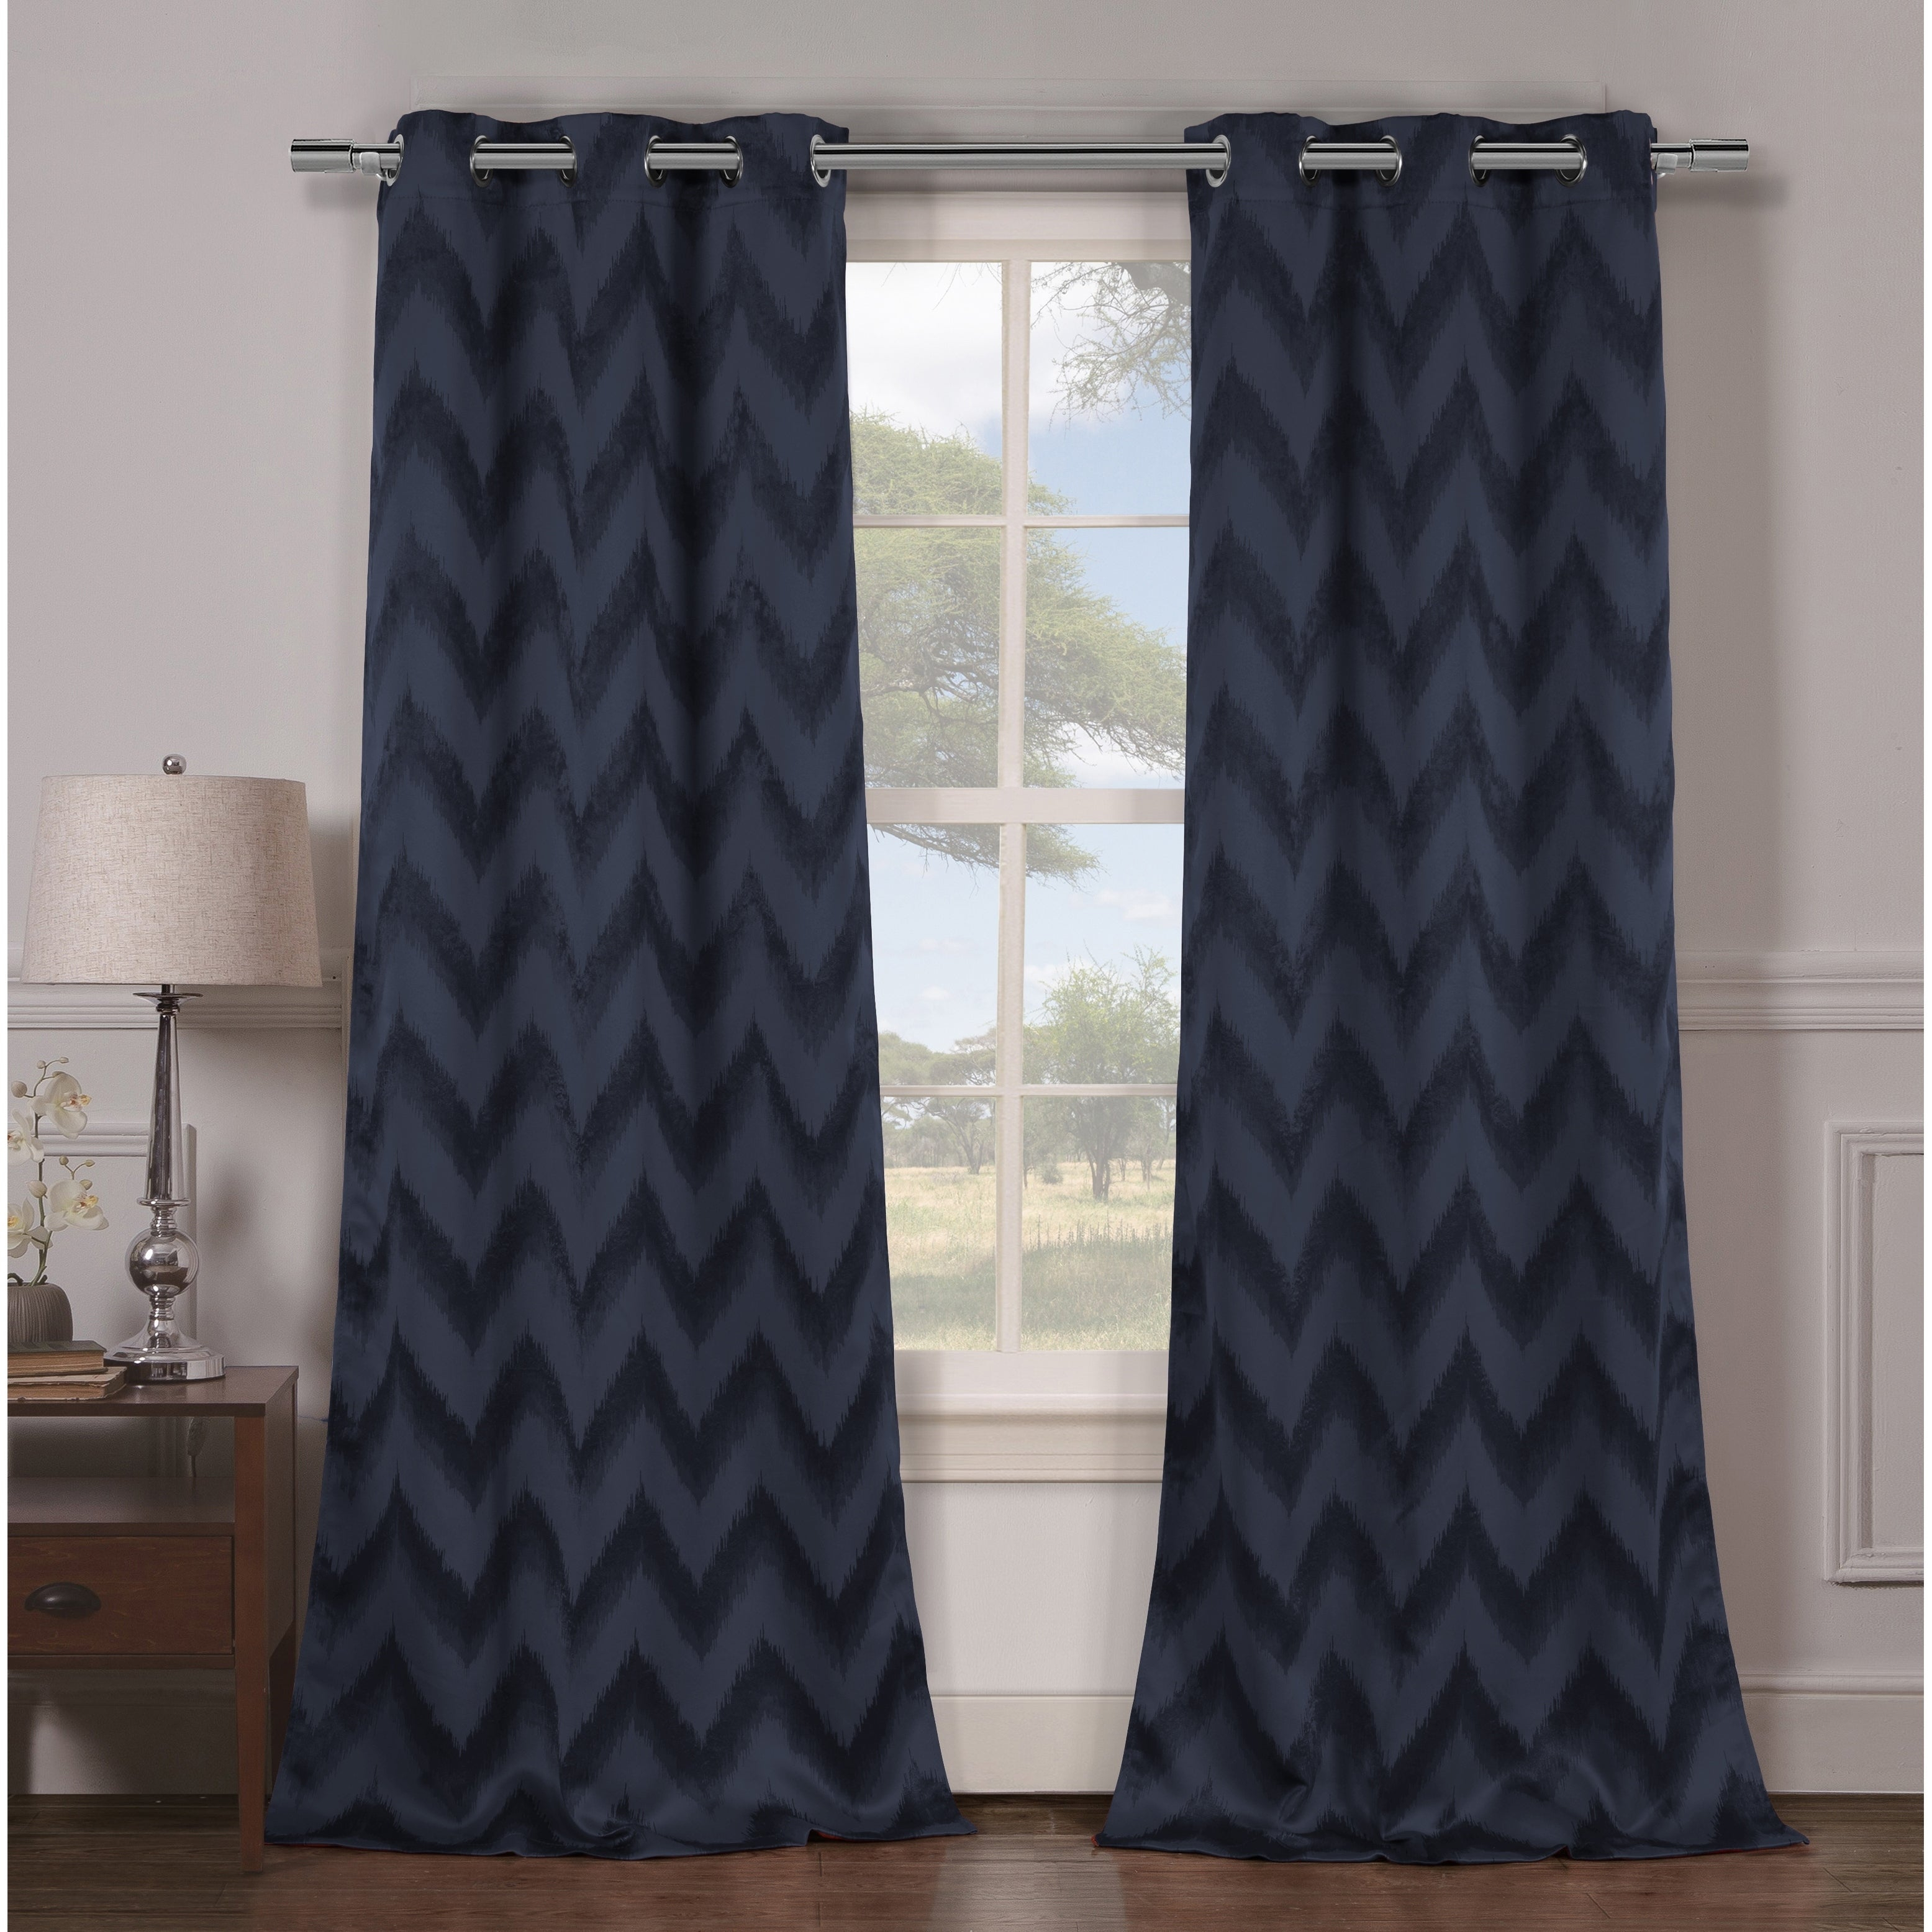 Detalles Acerca De Duck River Lysanna Grommet Top Thermal Insulated Blackout Curtain Panel Pair – Within Grommet Top Thermal Insulated Blackout Curtain Panel Pairs (View 6 of 20)